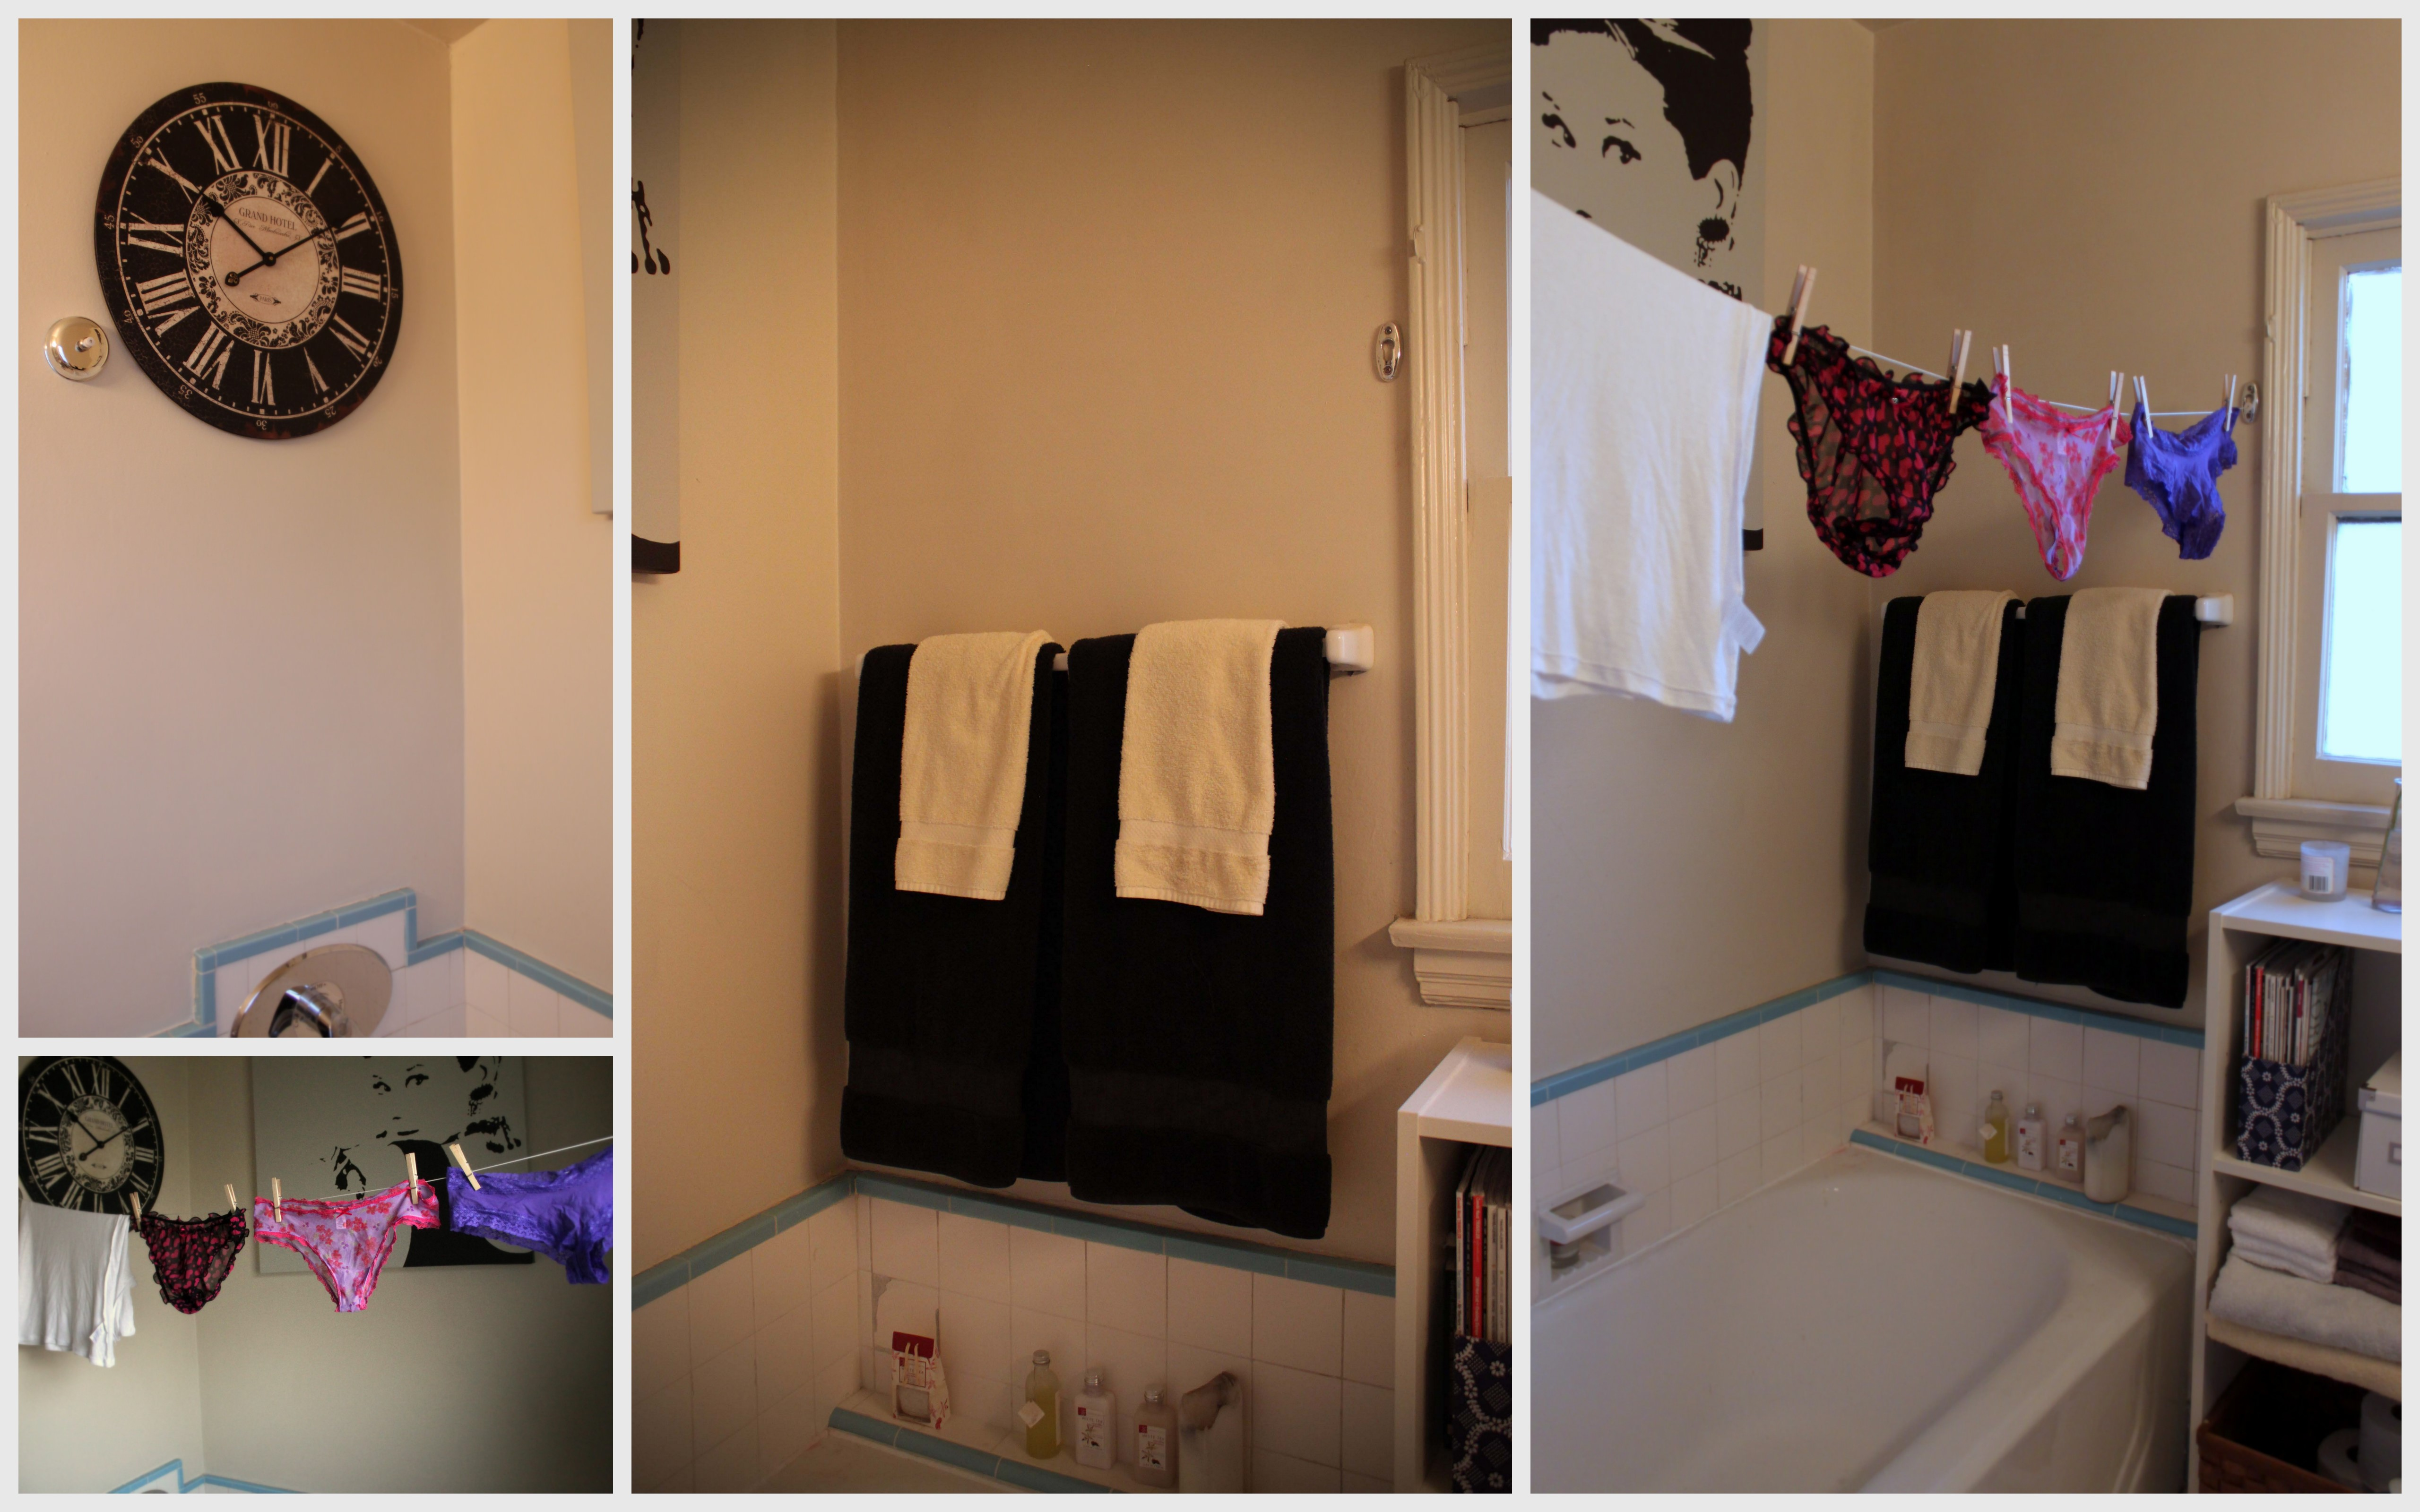 Indoors Indoor Clothing Line Bathroom Delicate Air Dry Apartment Life  Living Small Space Maximize